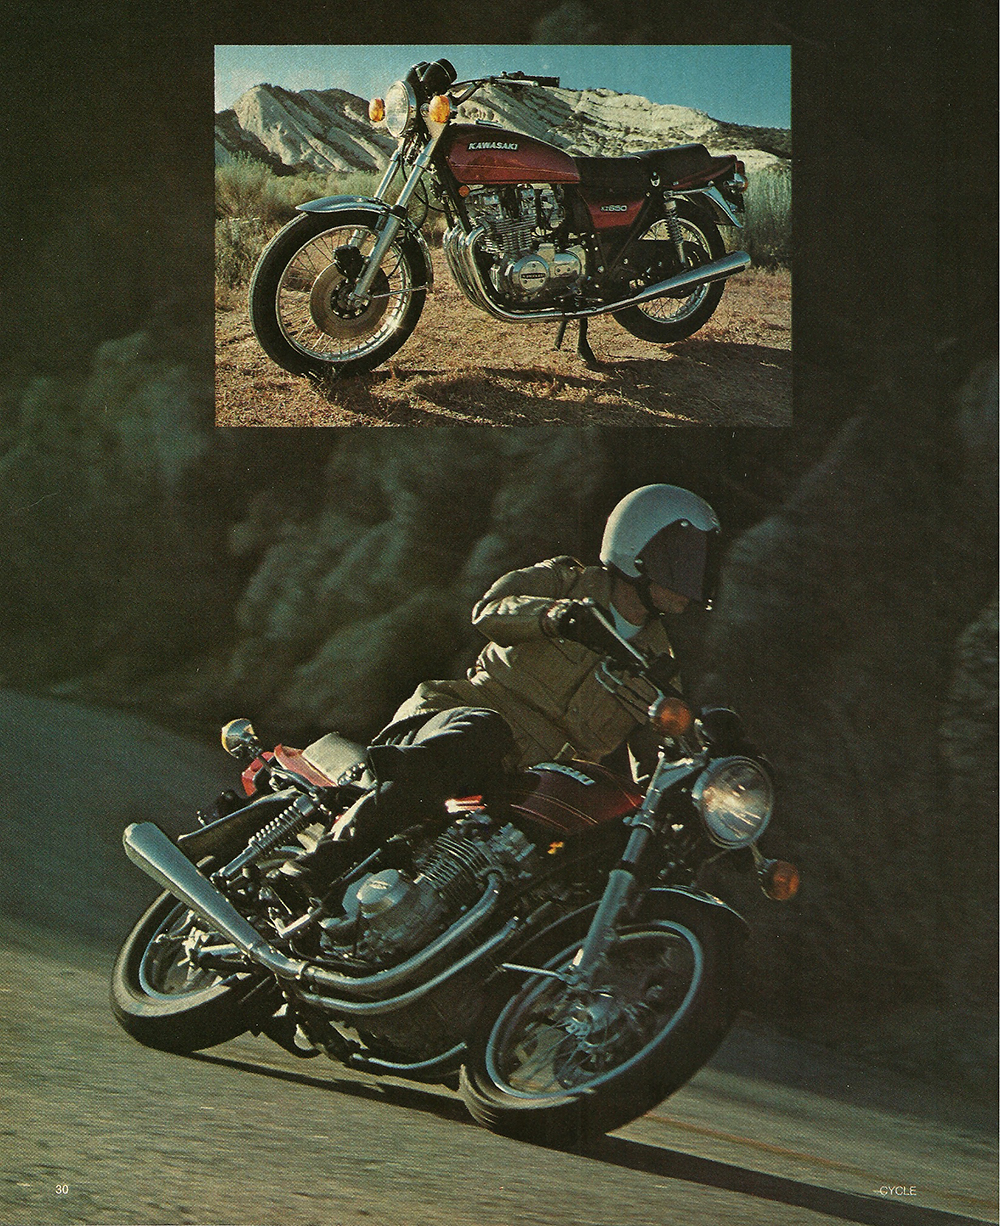 1976 Kawasaki KZ650 road test 03.jpg